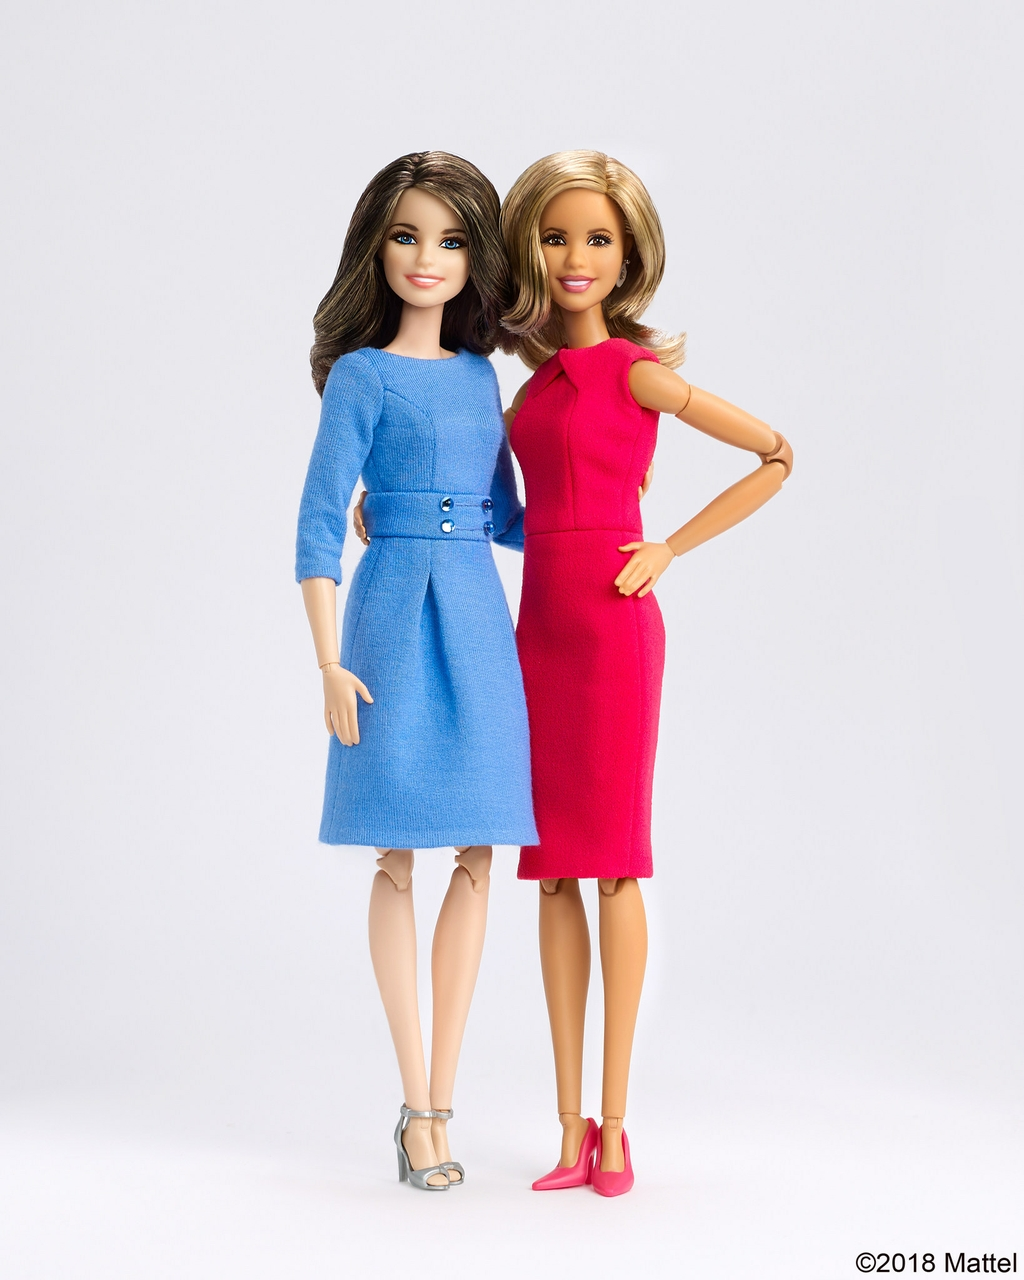 Barbie Honors Savannah Guthrie And Hoda Kotb As Role Models With One-Of-A-Kind Dolls